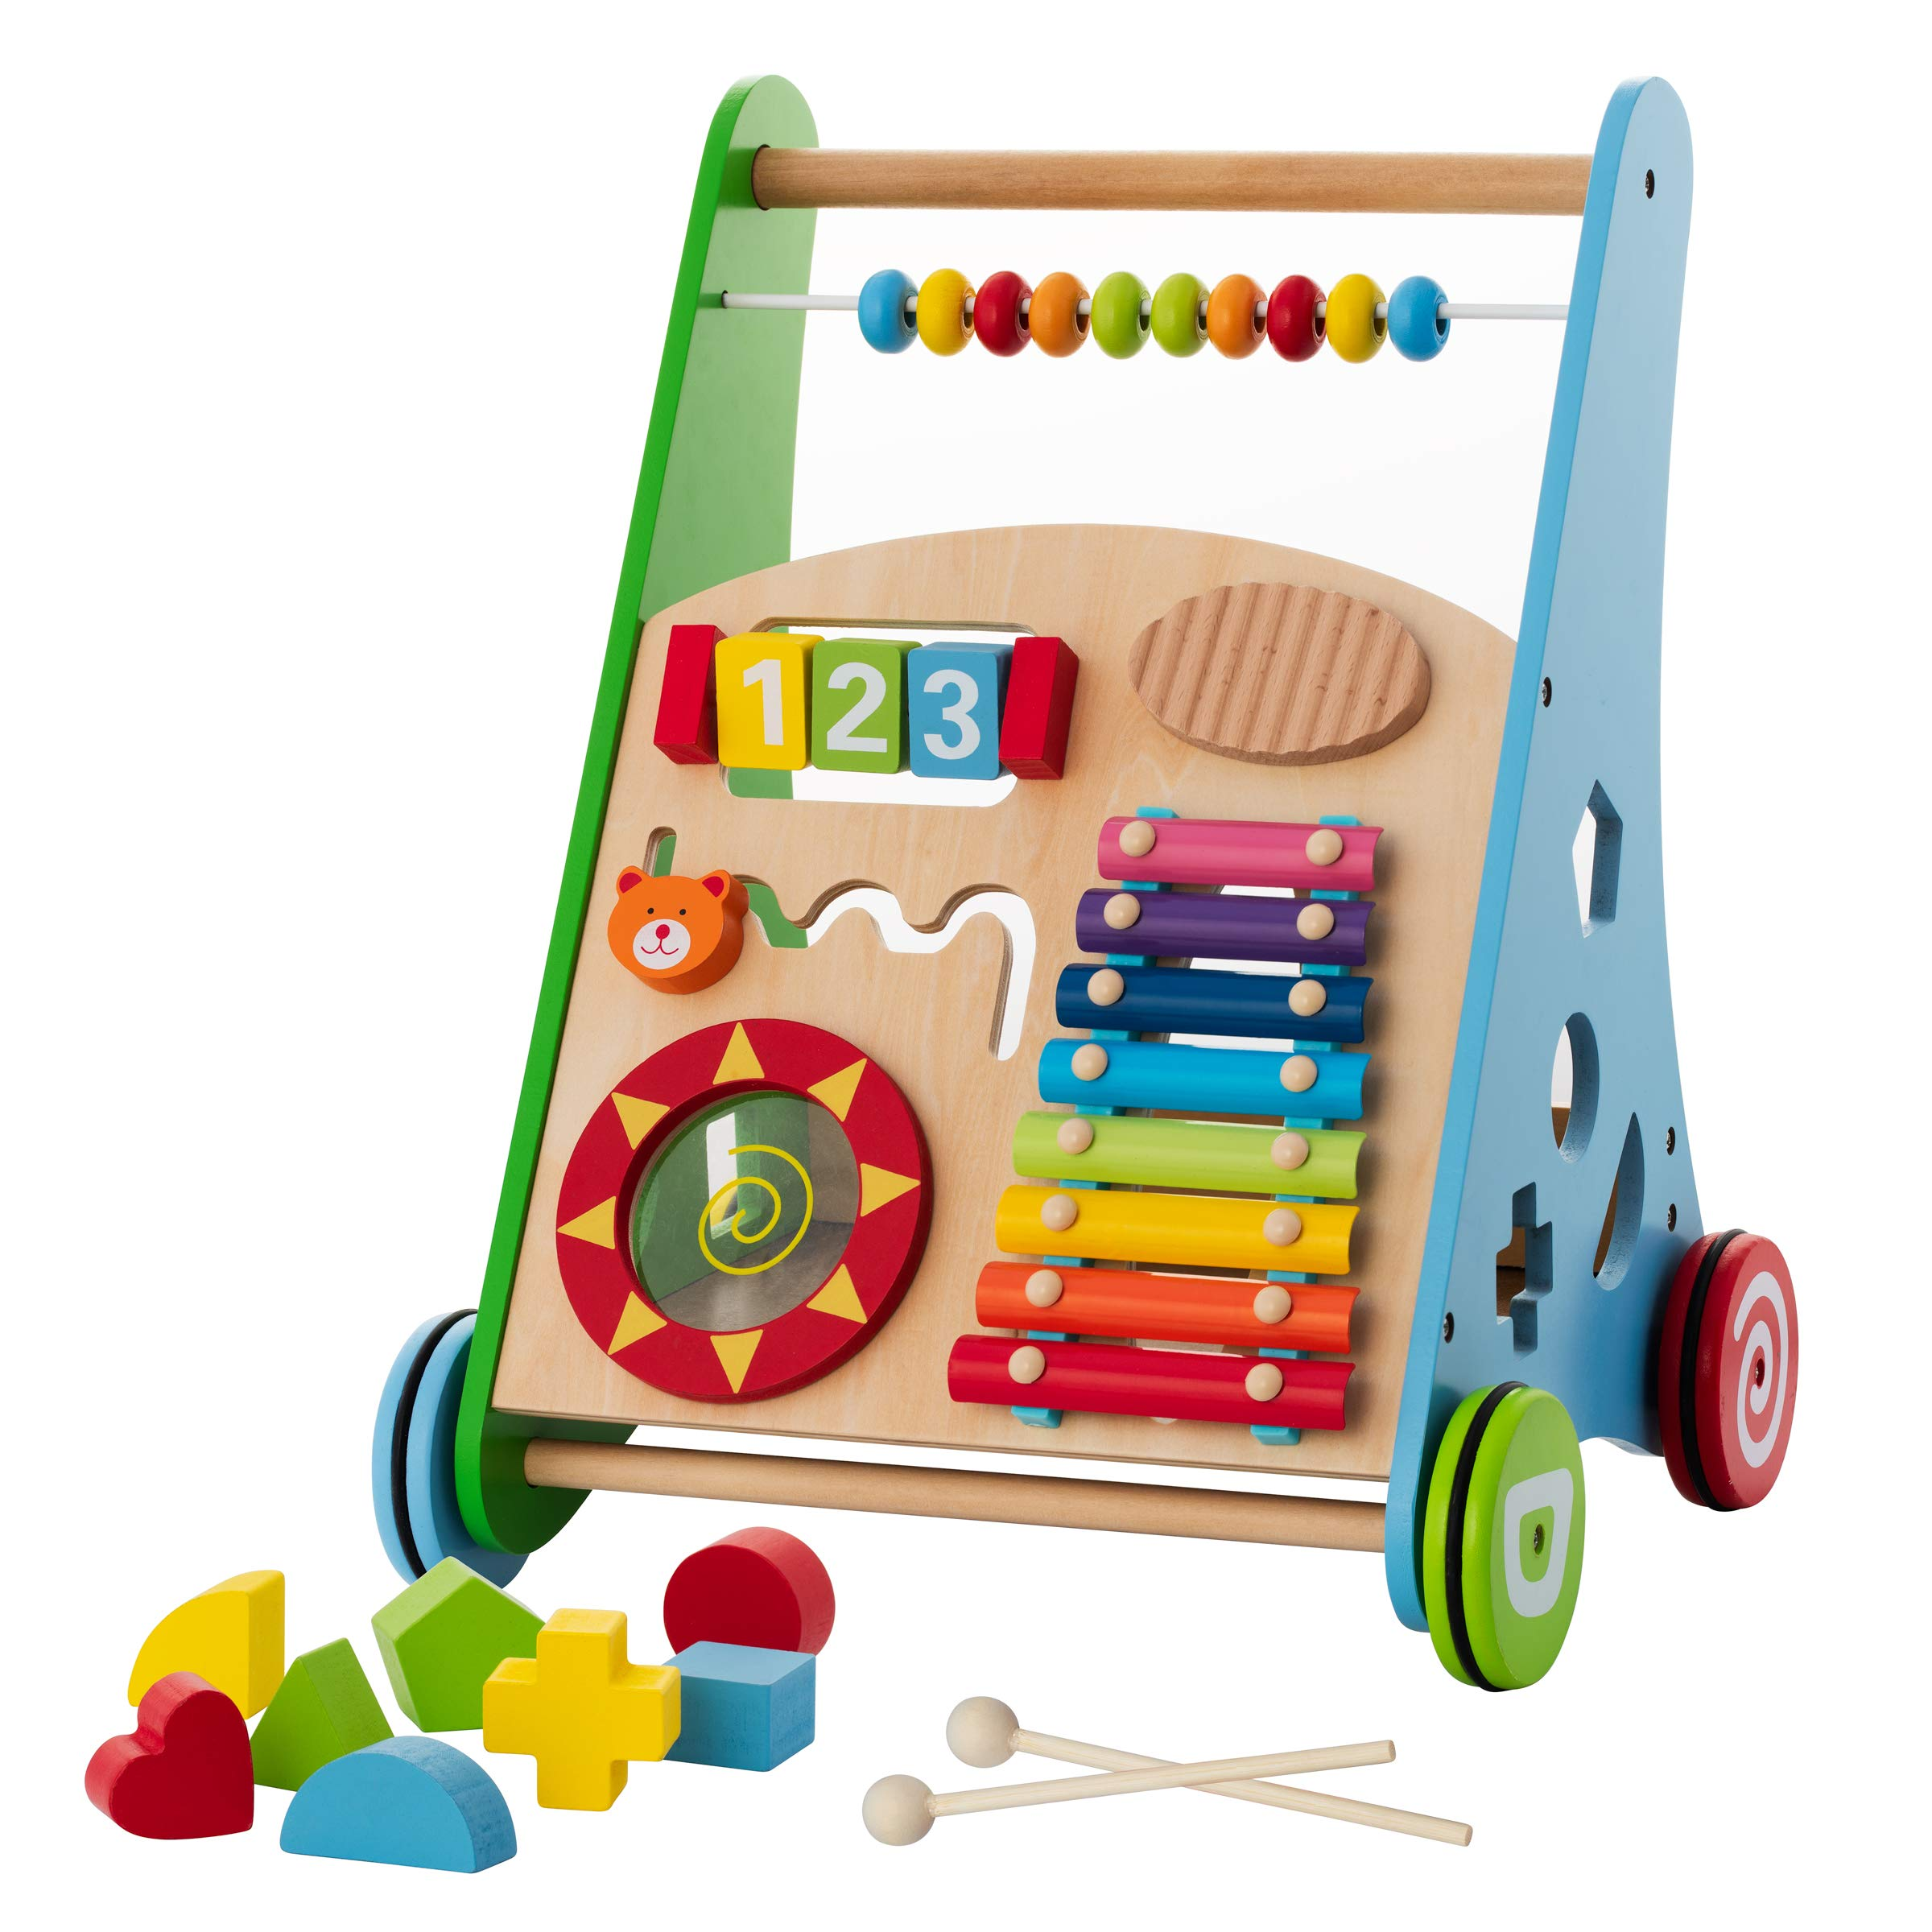 Baby Toys - Kids' Activity Toy - Wooden Push and Pull Learning Walker for Boys and Girls - Multiple Activities Center - Assembly Required - Develops Motor Skills & Stimulates Creativity